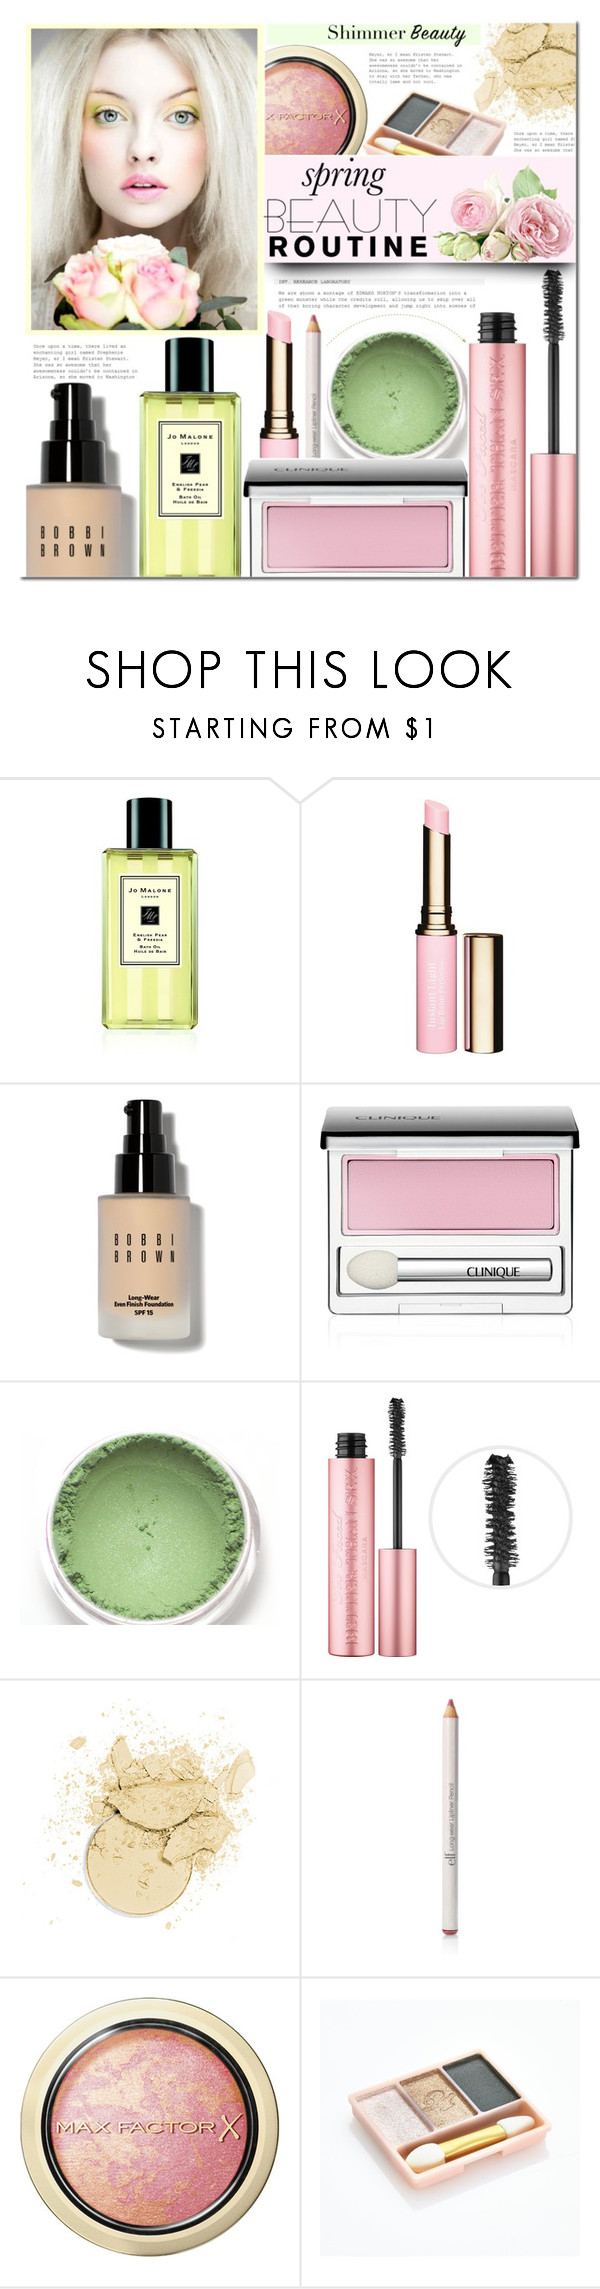 """""""Morning Beauty Routine"""" by mada-malureanu ❤ liked on Polyvore featuring beauty, Jo Malone, Clarins, Bobbi Brown Cosmetics, Clinique, Too Faced Cosmetics, e.l.f., Max Factor, Paul & Joe and Spring"""